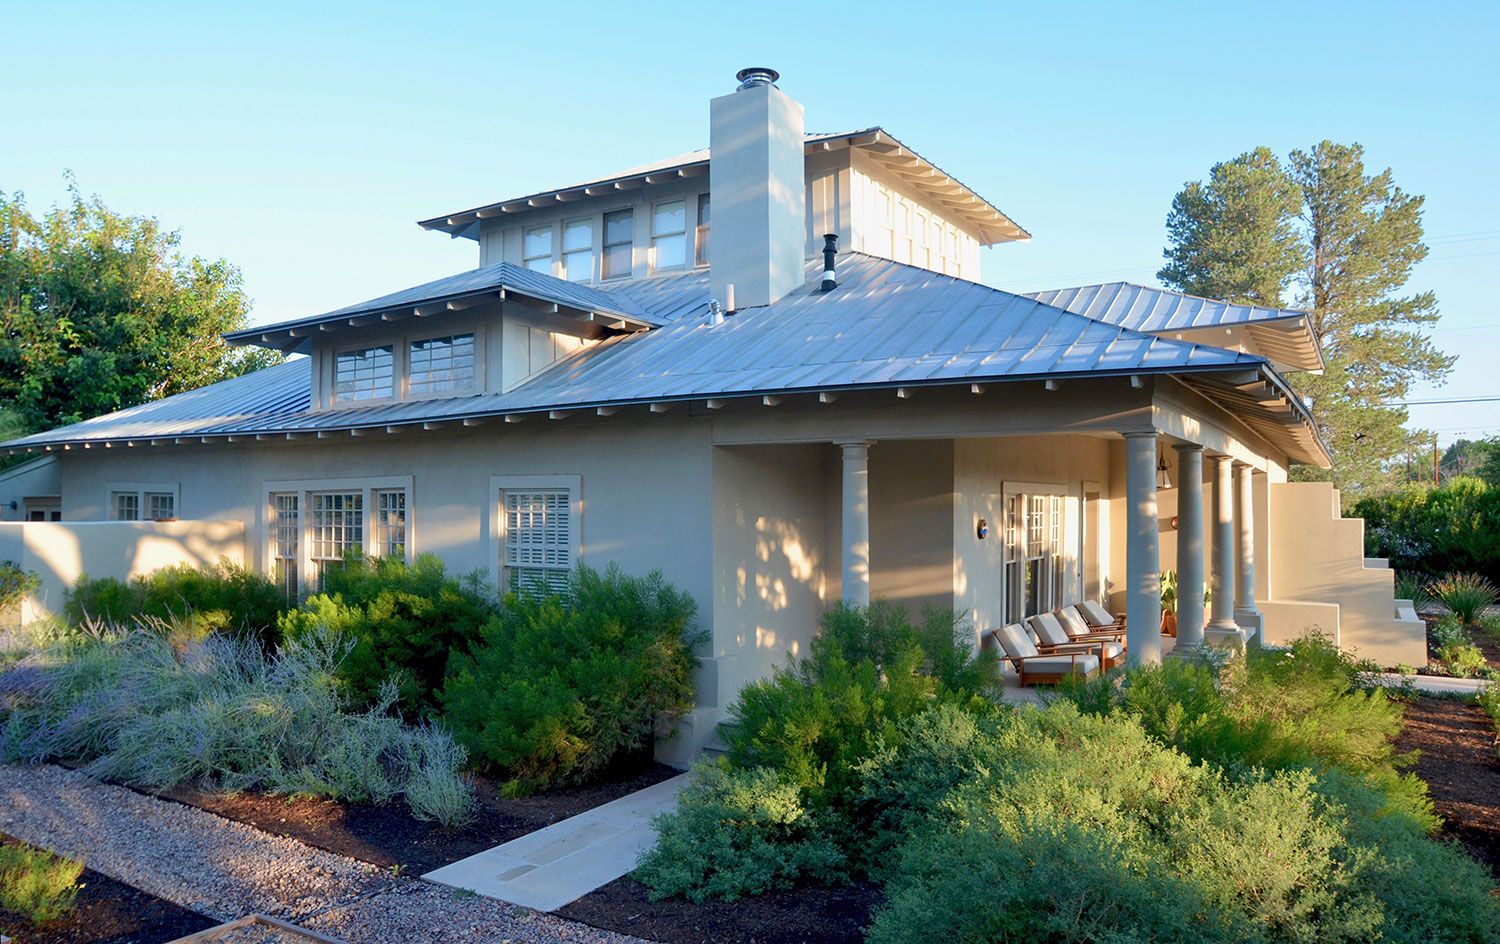 Location: Marfa, Texas  Project Type: Residential Remodel